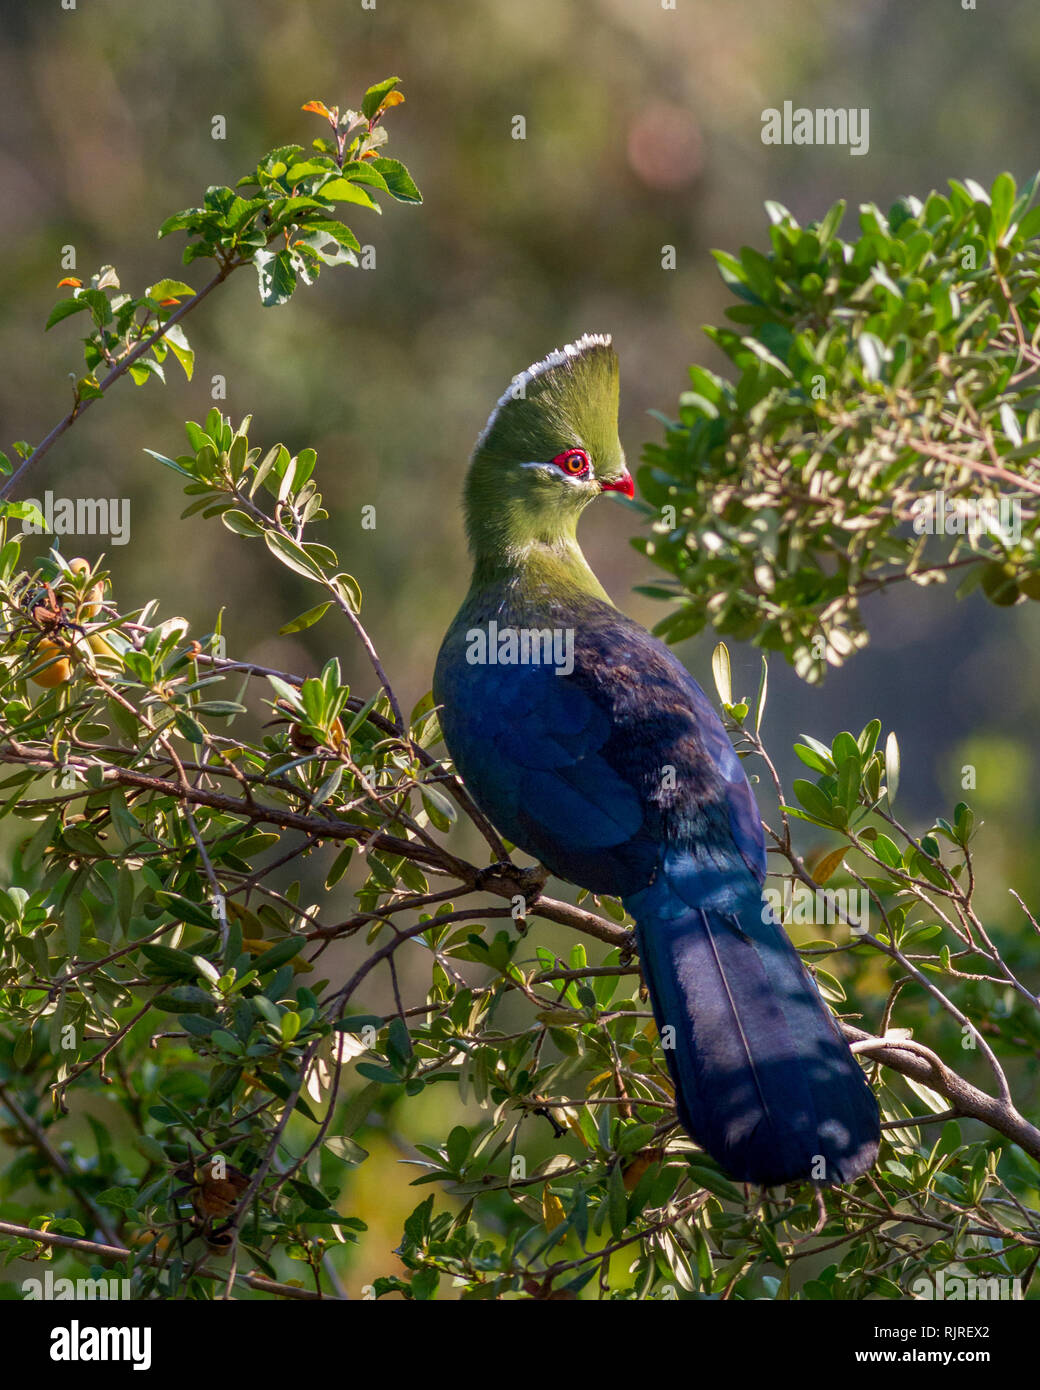 Knysna turaco bird sitting in the sunlight perched in a tree showing full body, plumage and crest Stock Photo